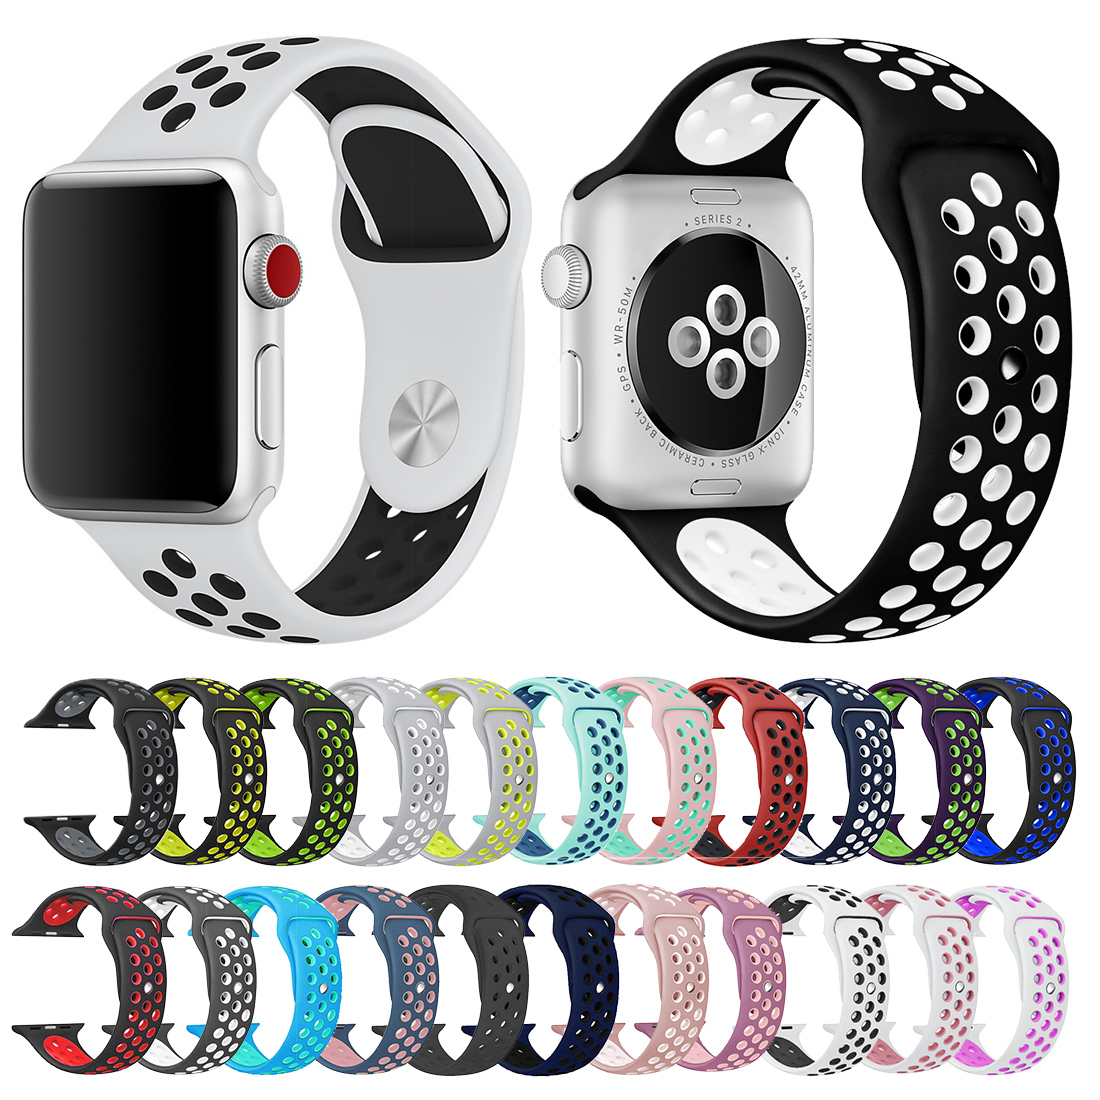 Soft Silicone Replacement Wristband For Apple Watch 44mm 40mm Breathable Hole Iwatch Series 5 4 3 2 1 Band 42mm 38mm Strap